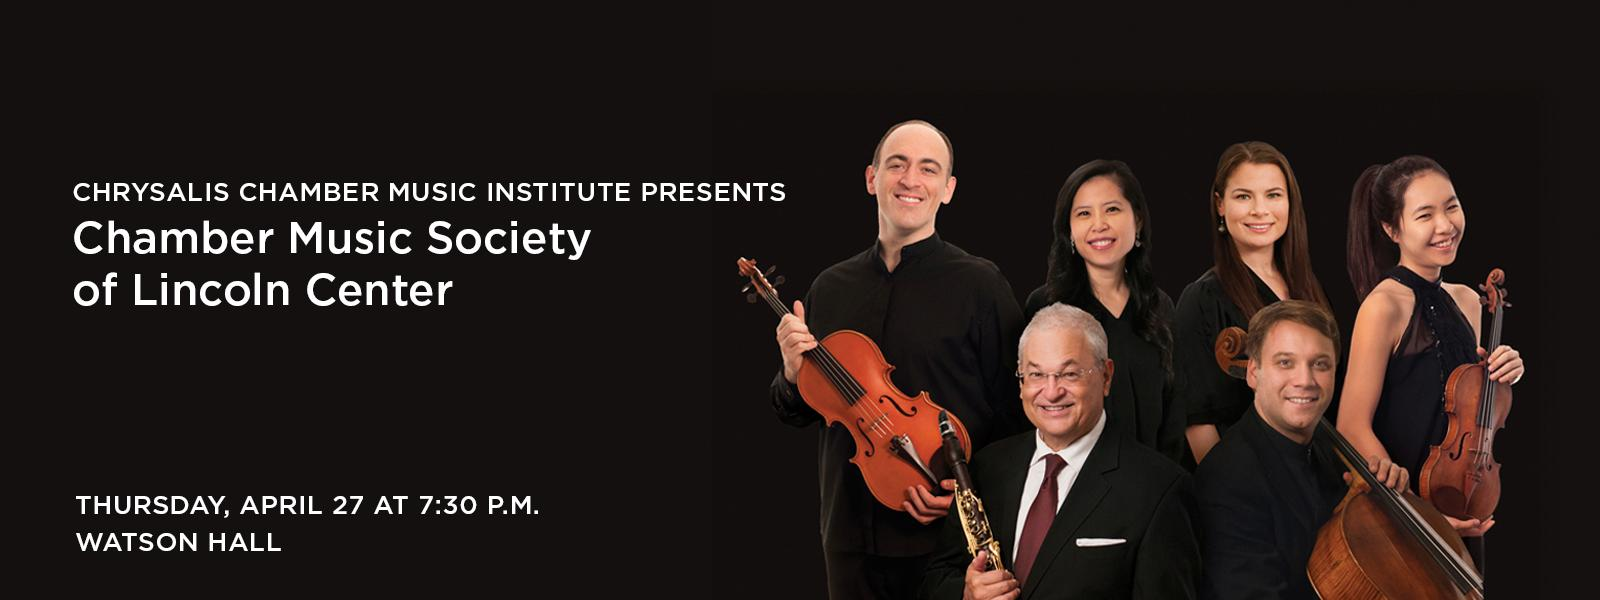 The distinguished Chamber Music Society of Lincoln Center returns to UNCSA with a program of Bartok, Shostakovich and Mozart. >> BUY TICKETS